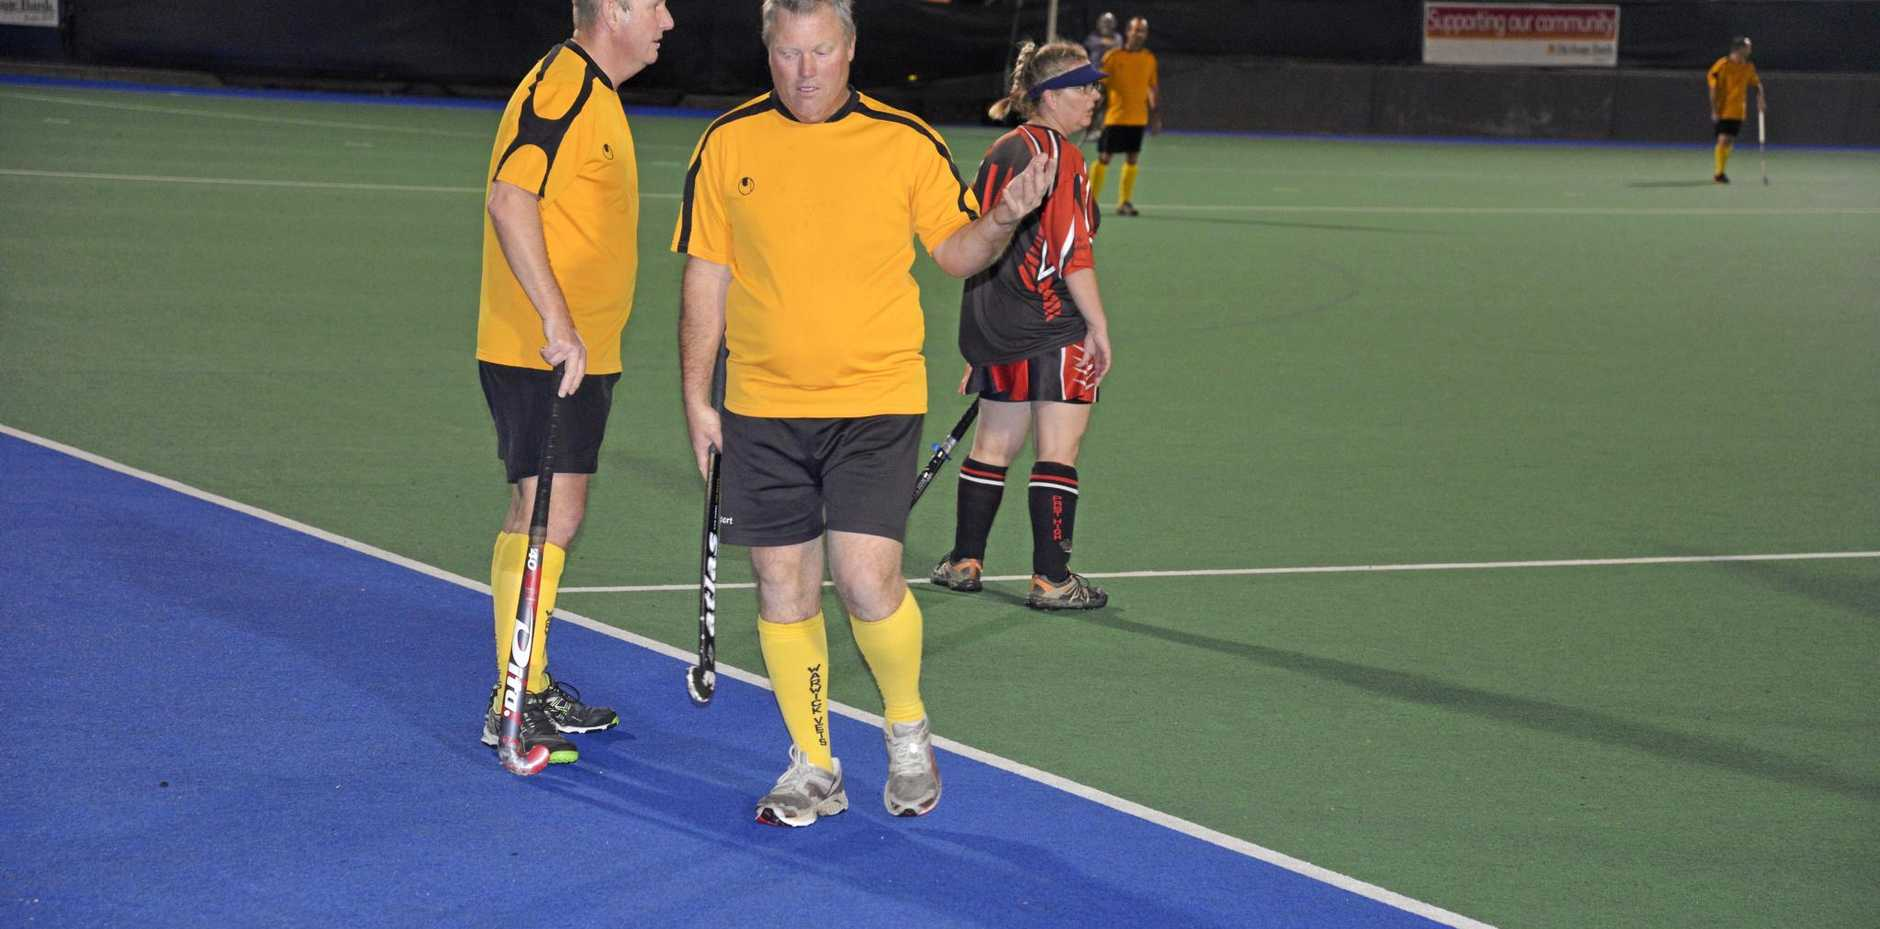 Phil Rolfe (right) and Gary Millard discuss tactics.